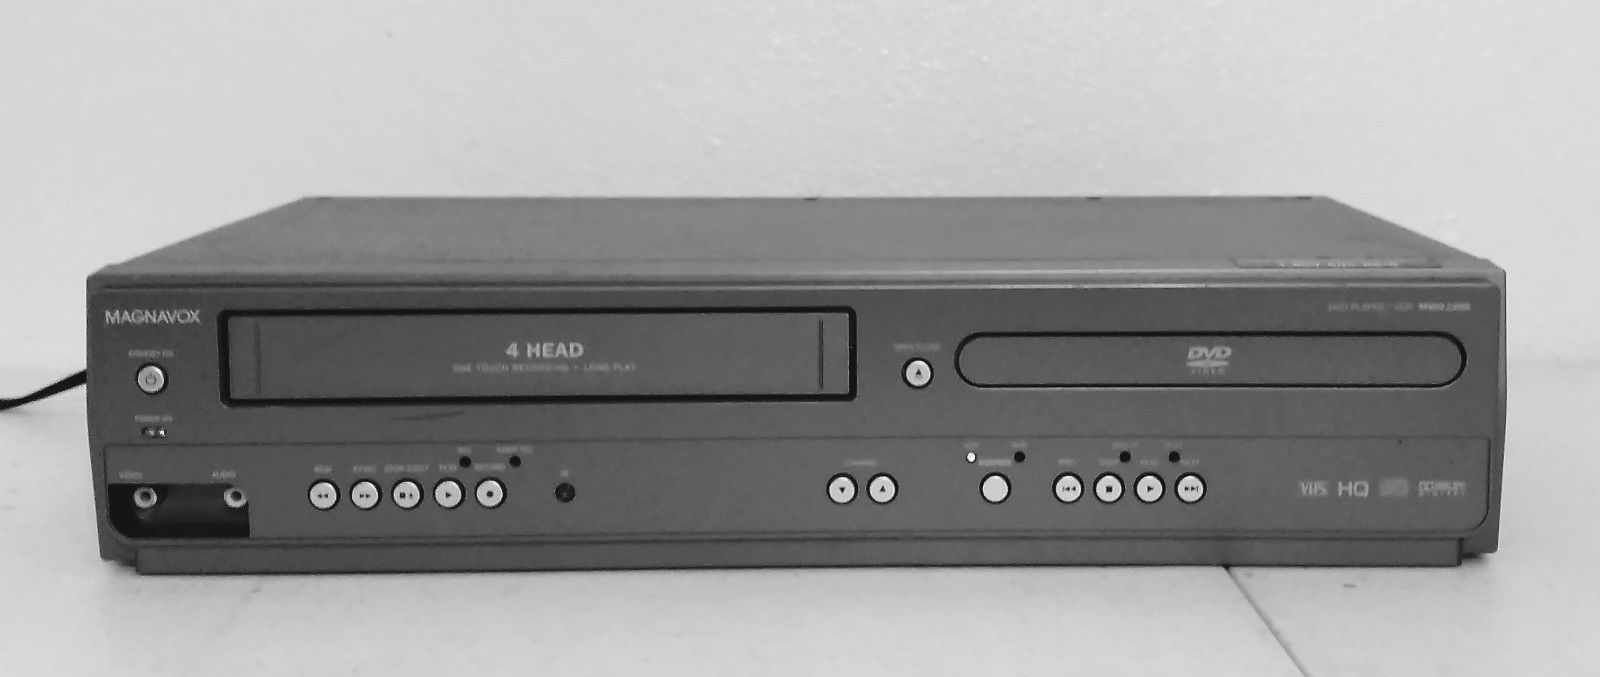 Magnavox MWD2206 DVD/VCR Combo Player VHS and 50 similar items